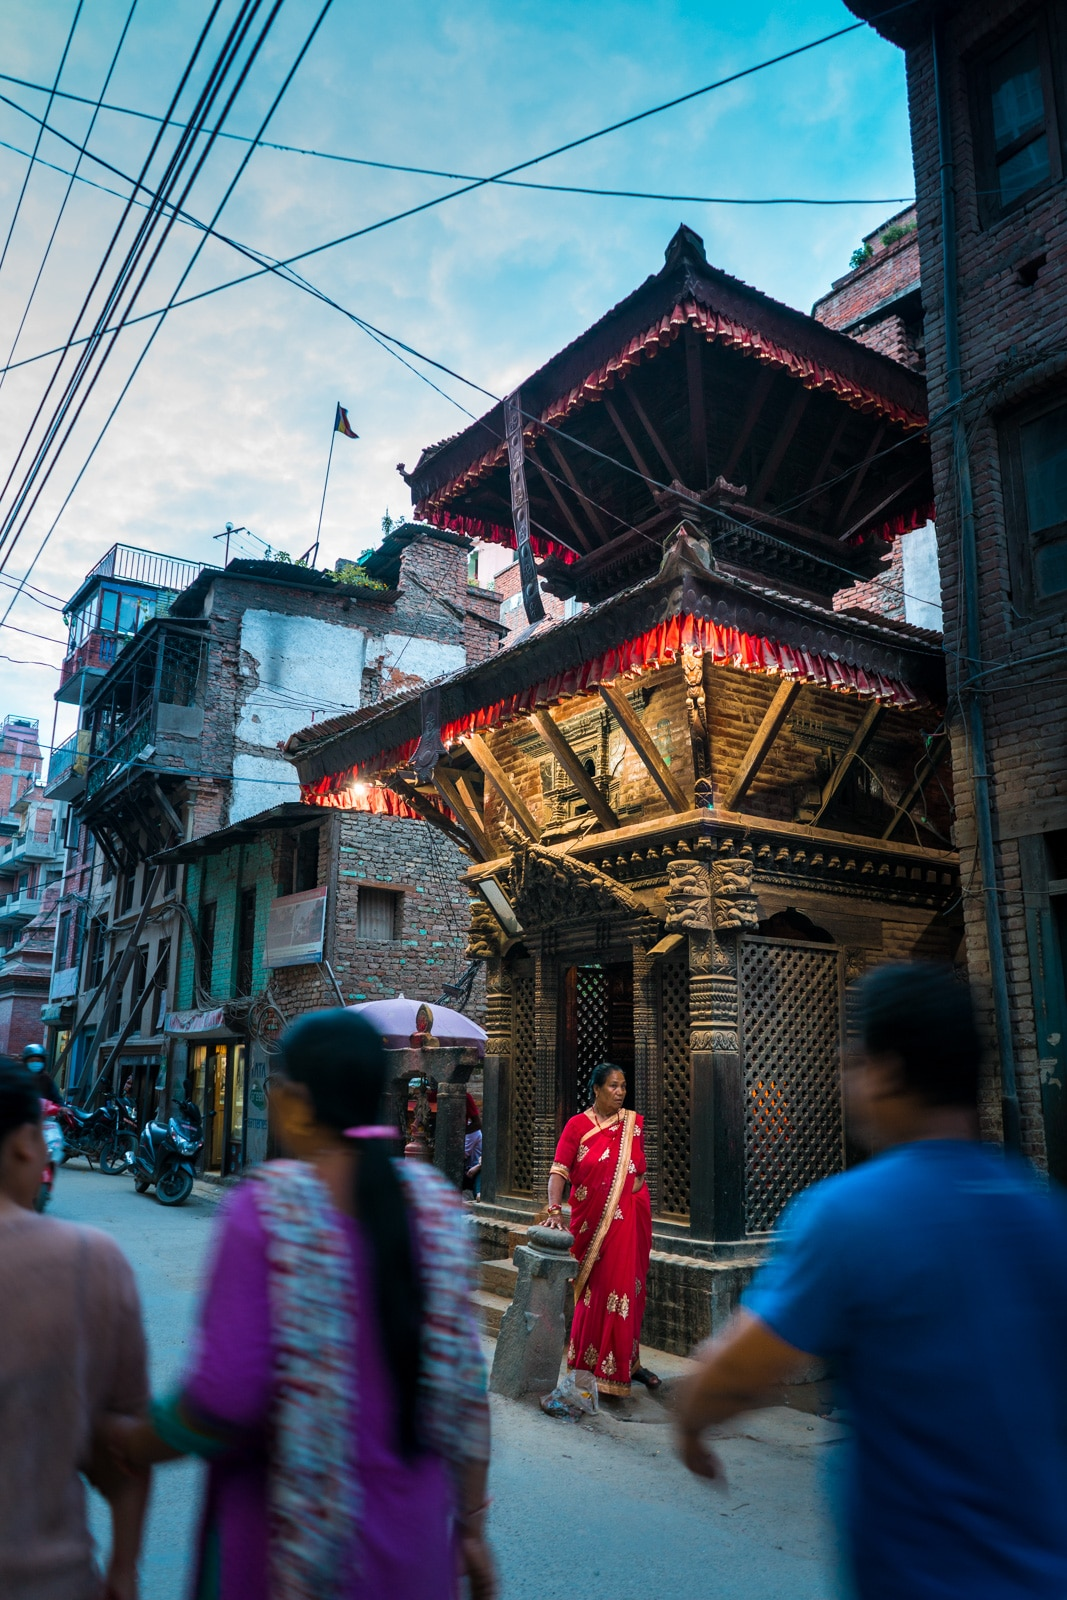 A local Nepali woman in a bright red sari before a small shrine on the busy streets of Patan, Nepal during twilight.